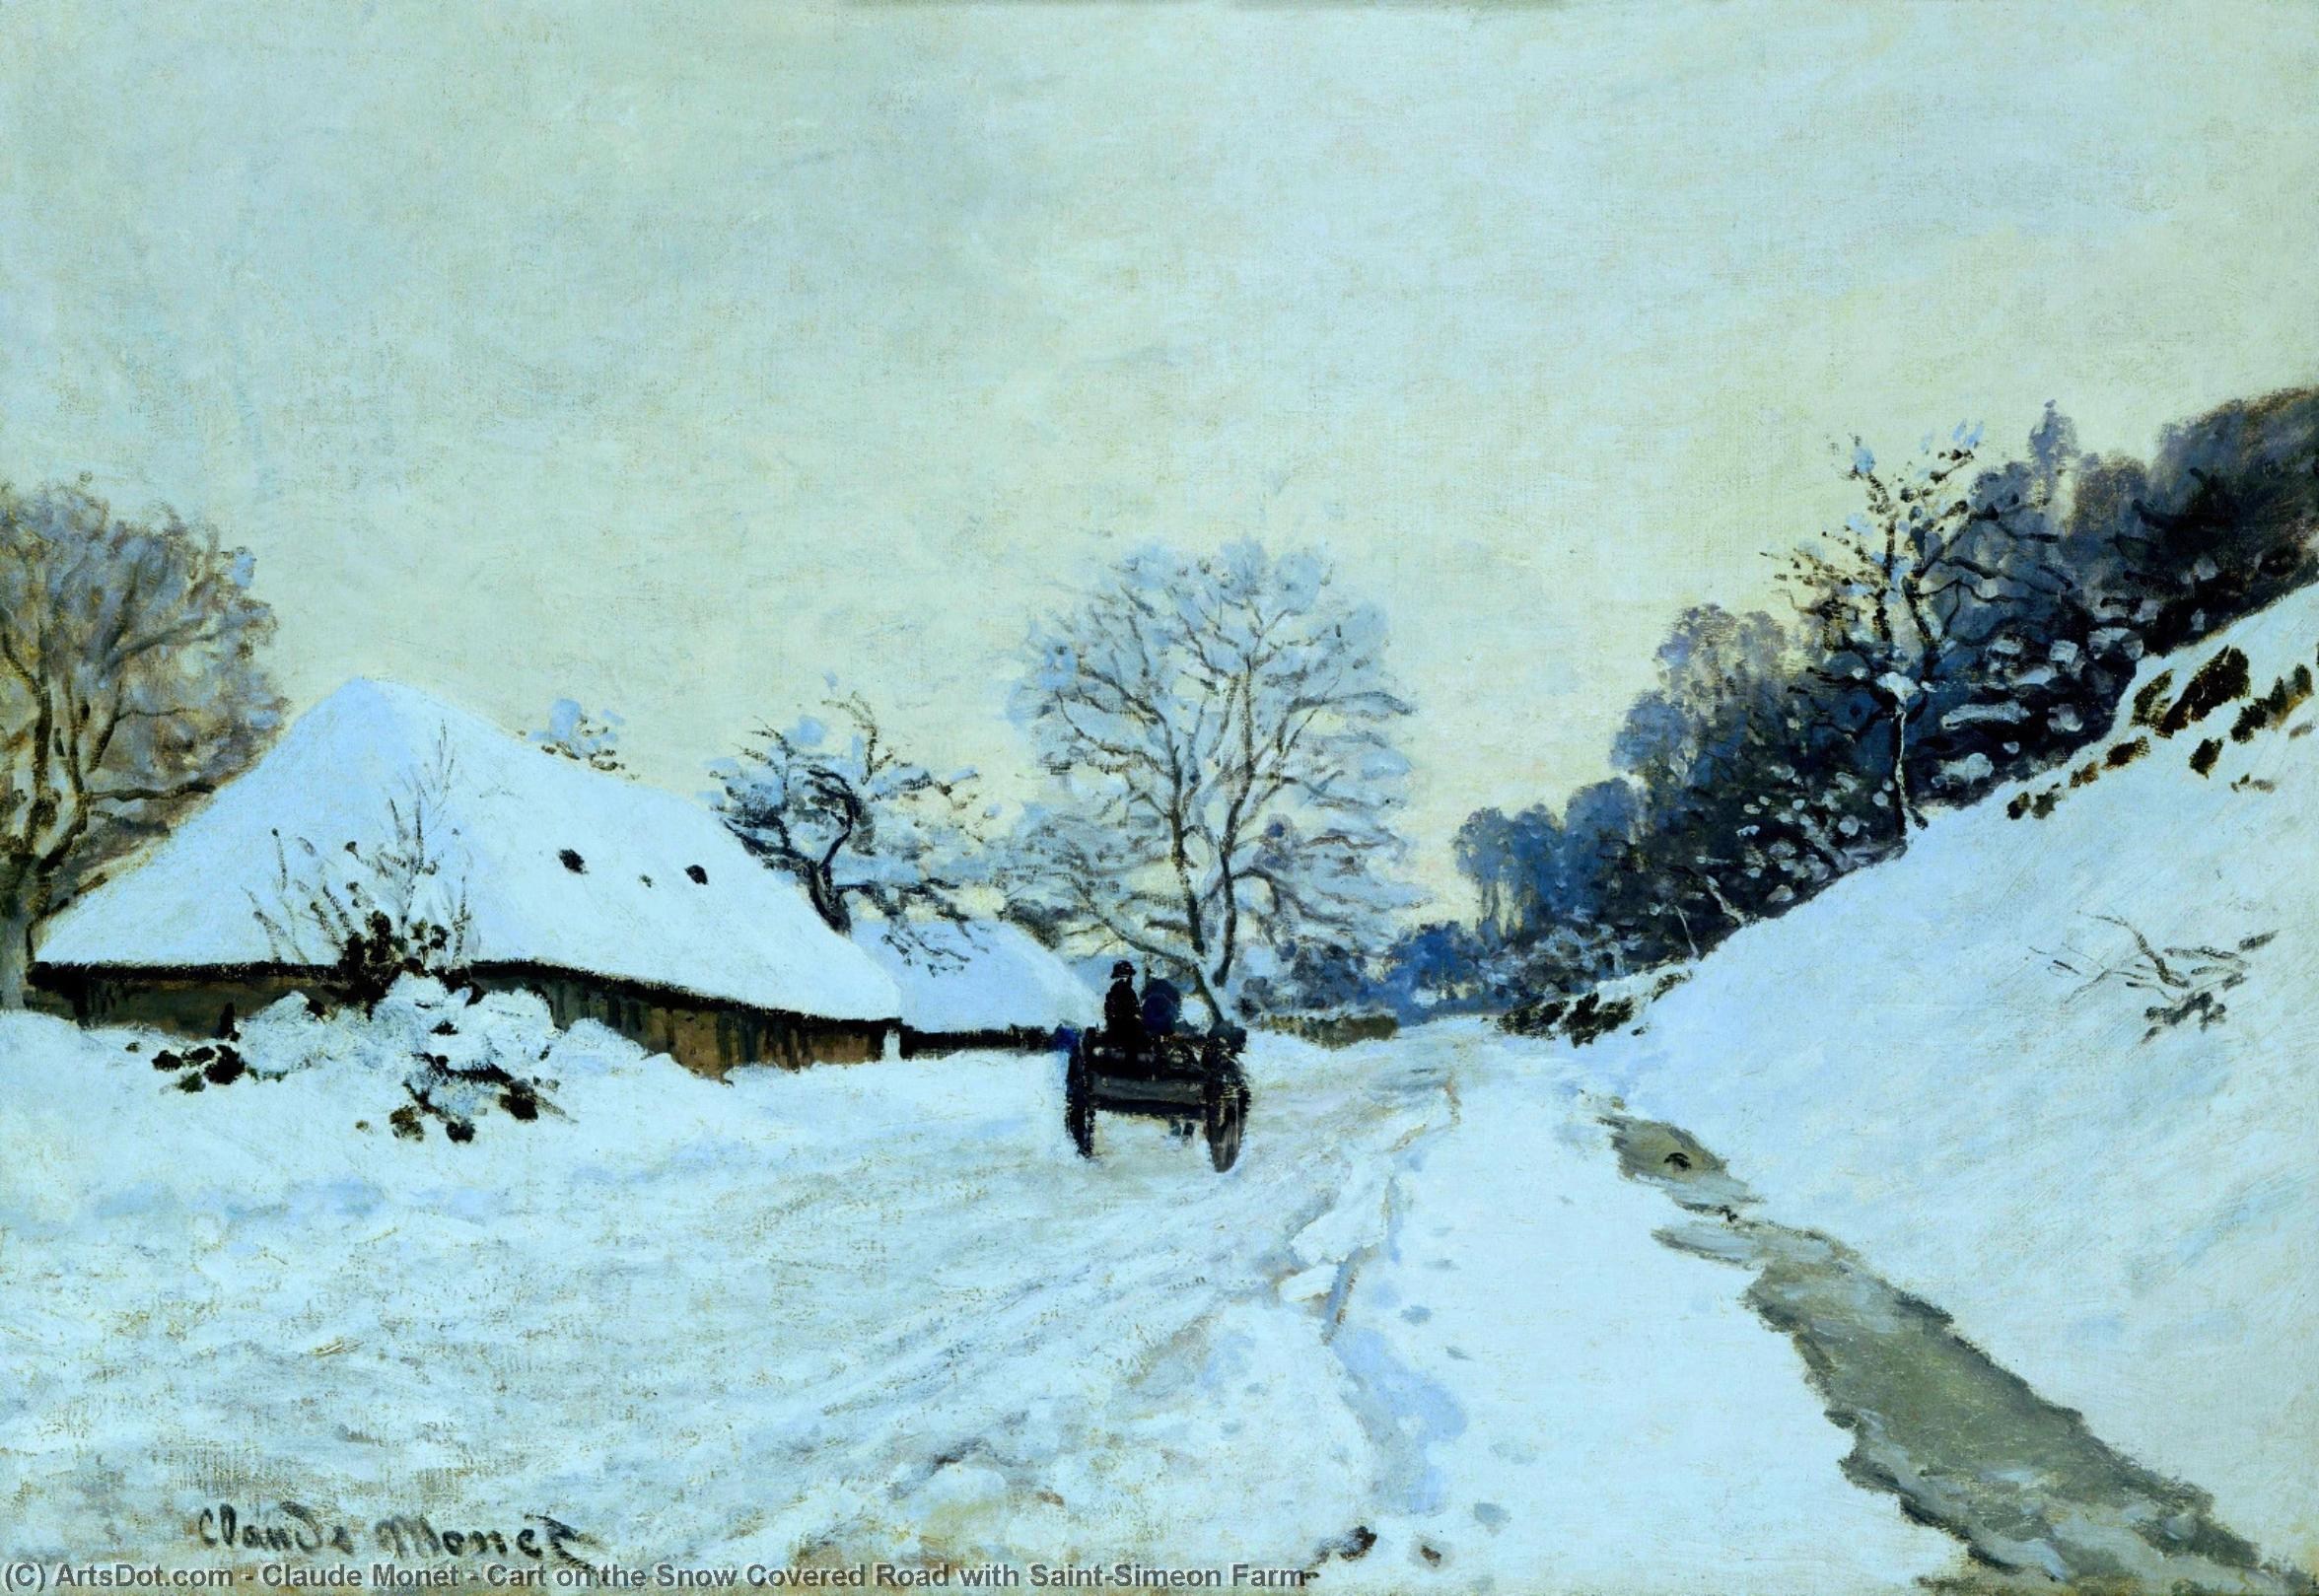 Wikioo.org - The Encyclopedia of Fine Arts - Painting, Artwork by Claude Monet - Cart on the Snow Covered Road with Saint-Simeon Farm